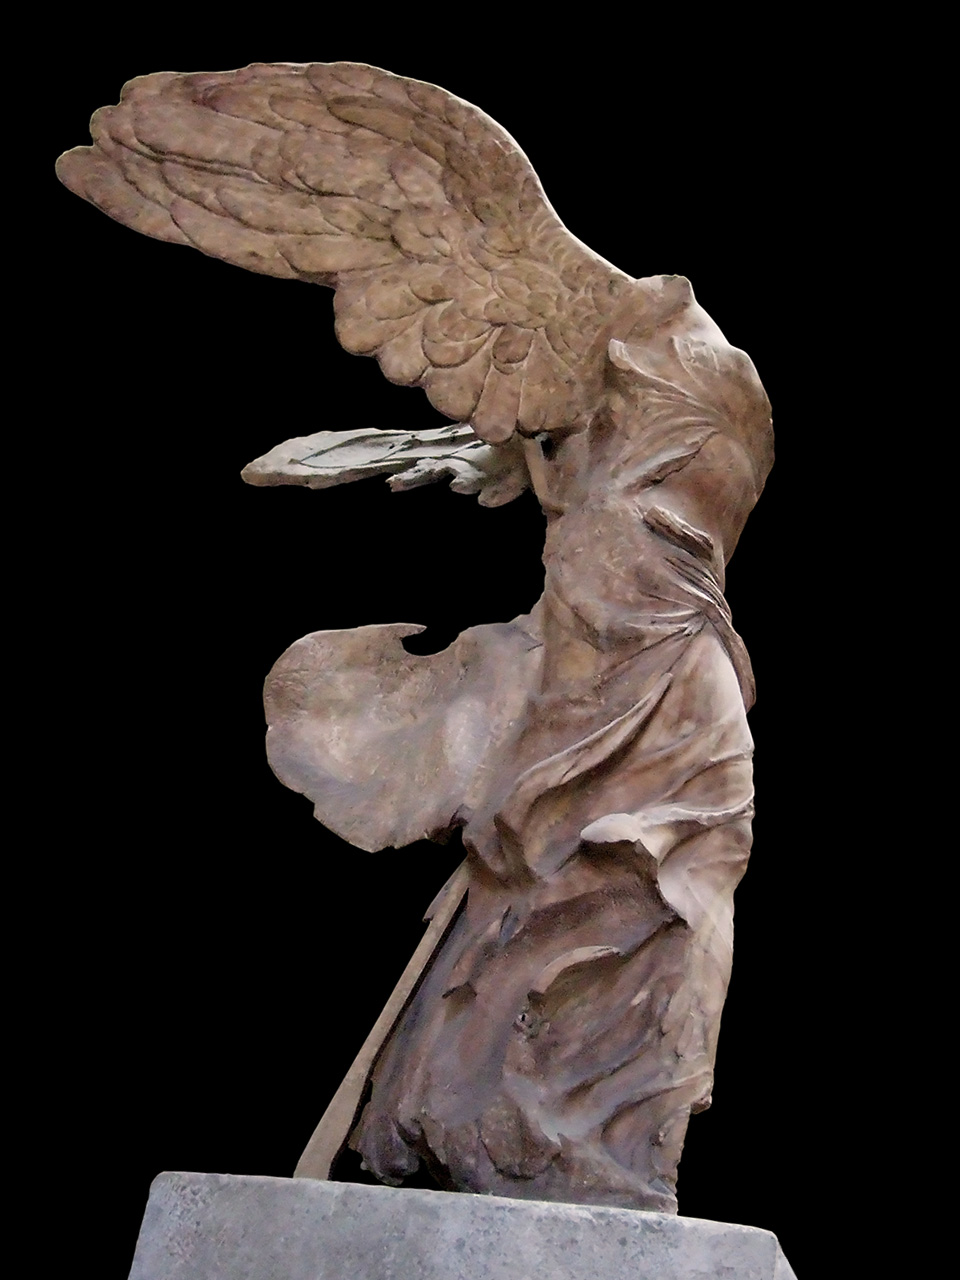 http://upload.wikimedia.org/wikipedia/commons/c/c2/Winged_Victory_of_Samothrace_side.jpg